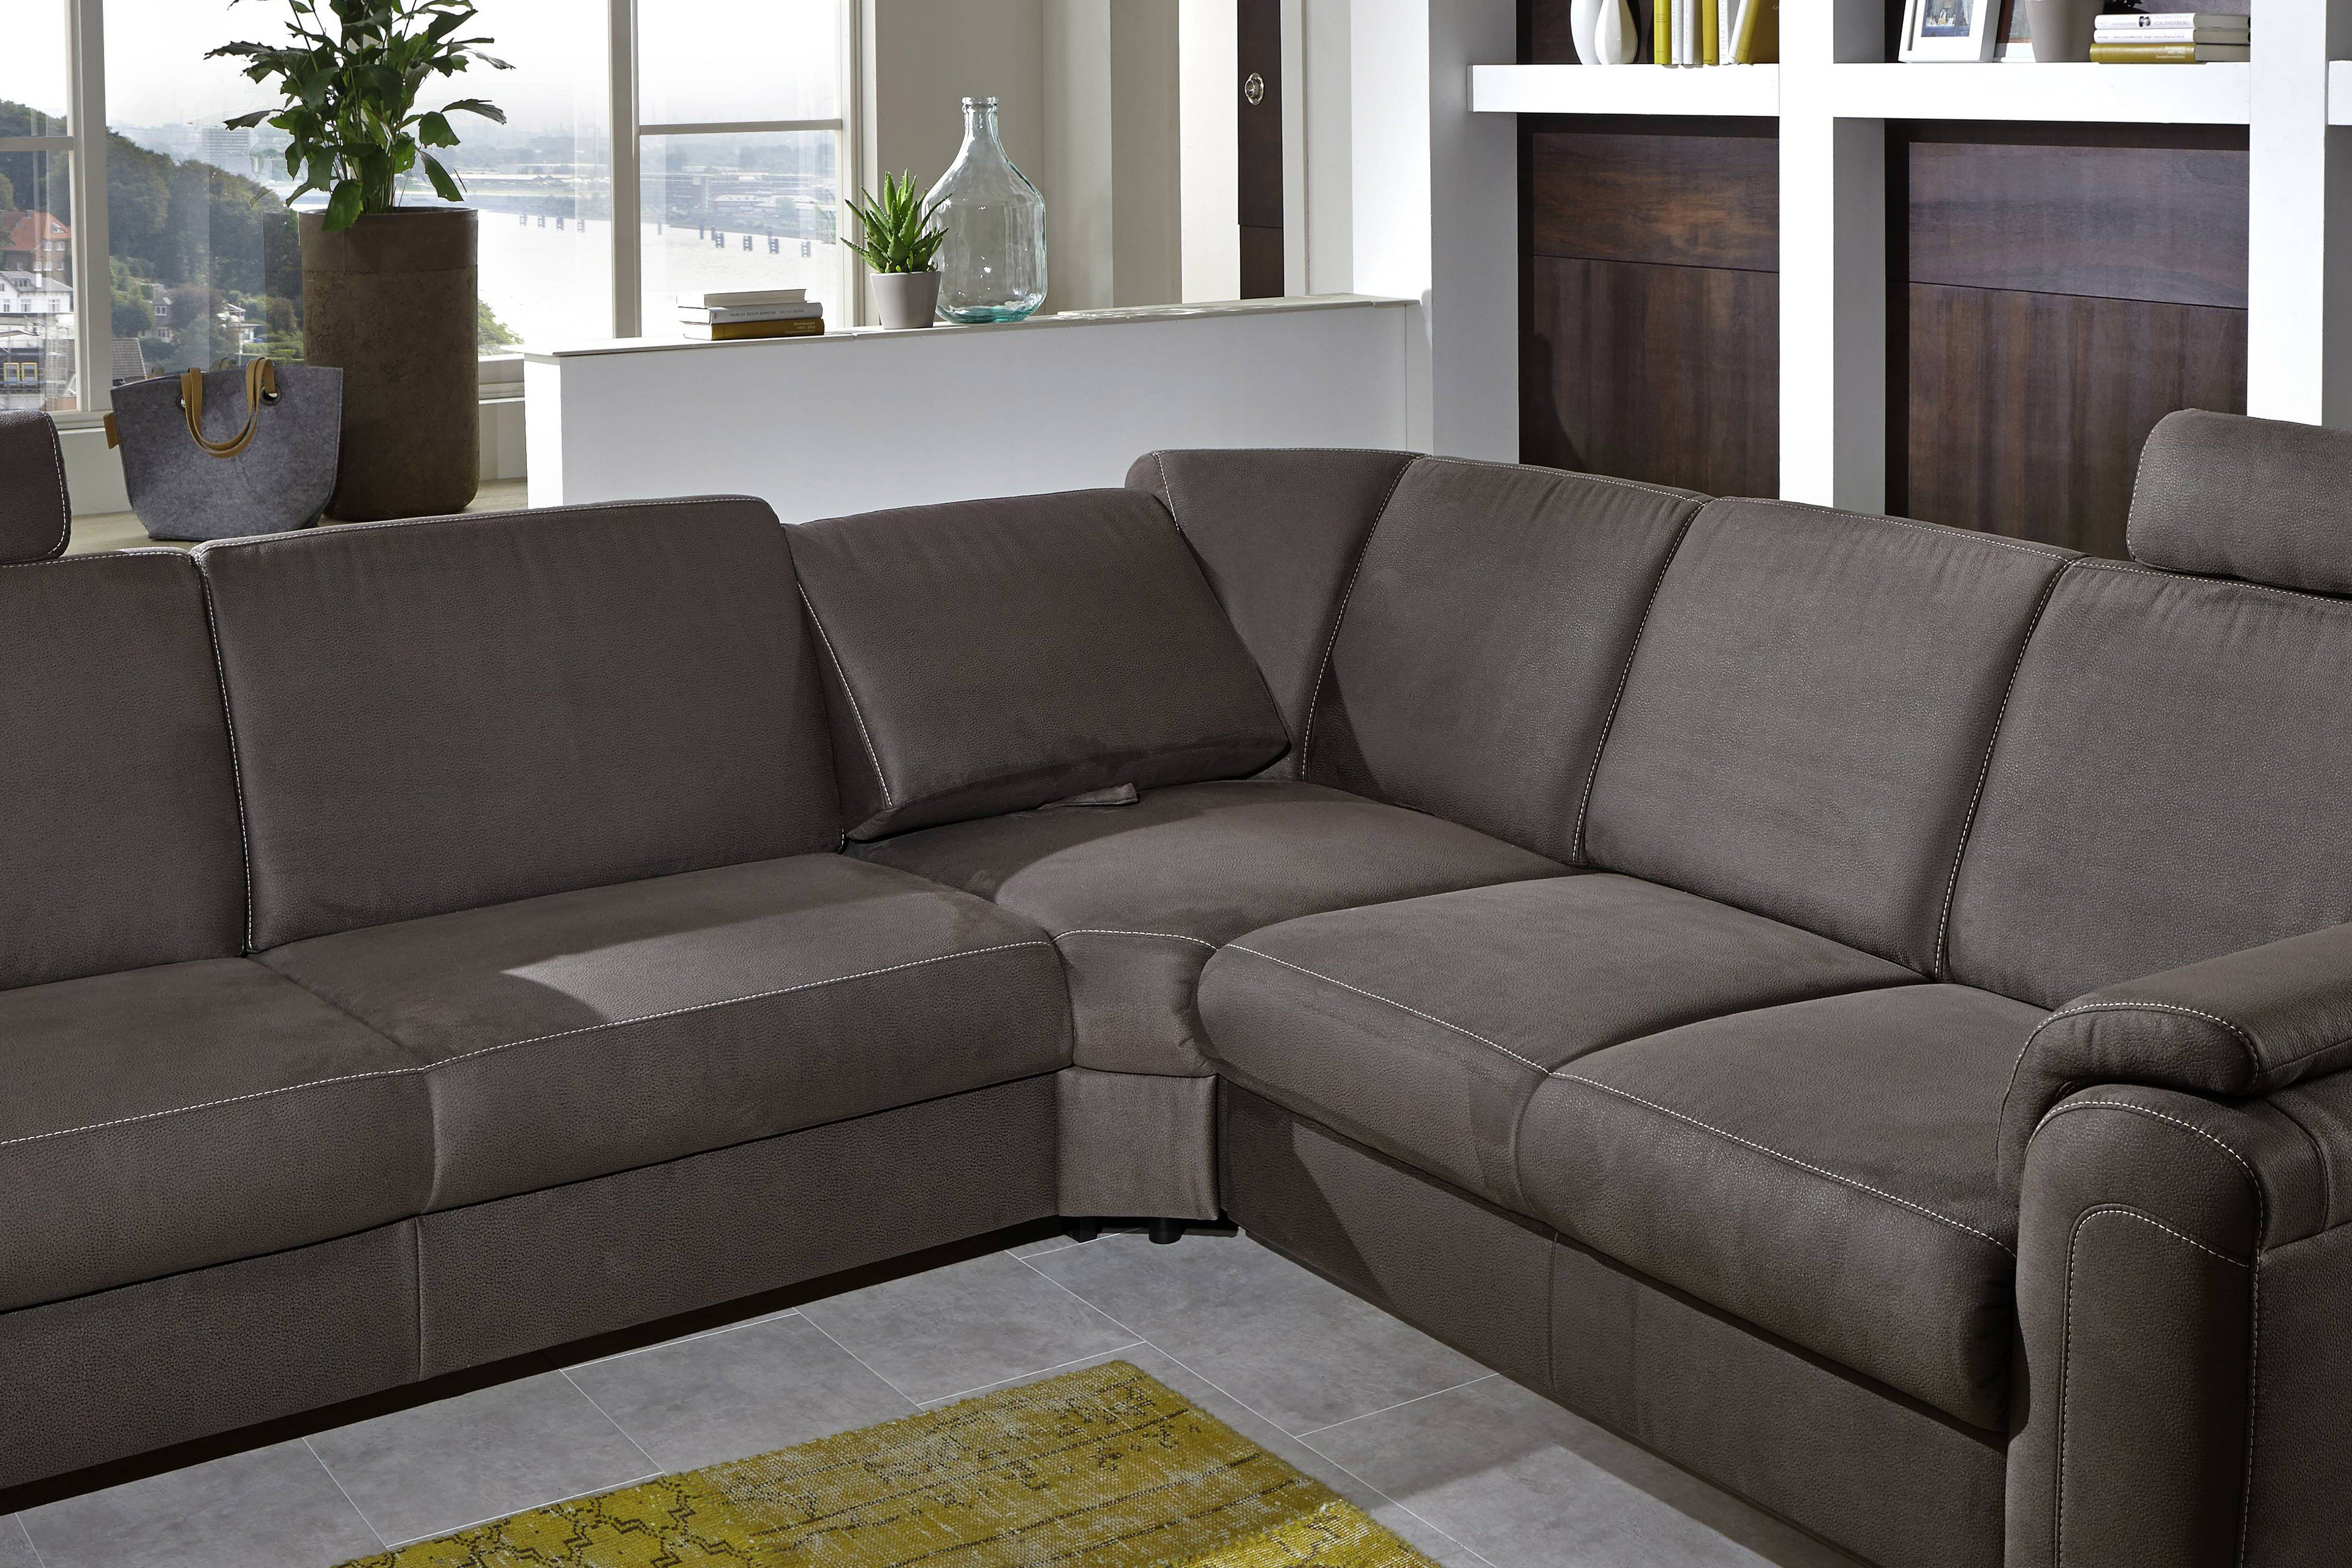 zehdenick sofa affordable bzw ecksofa und with zehdenick sofa zehdenick auf ideen auch with. Black Bedroom Furniture Sets. Home Design Ideas